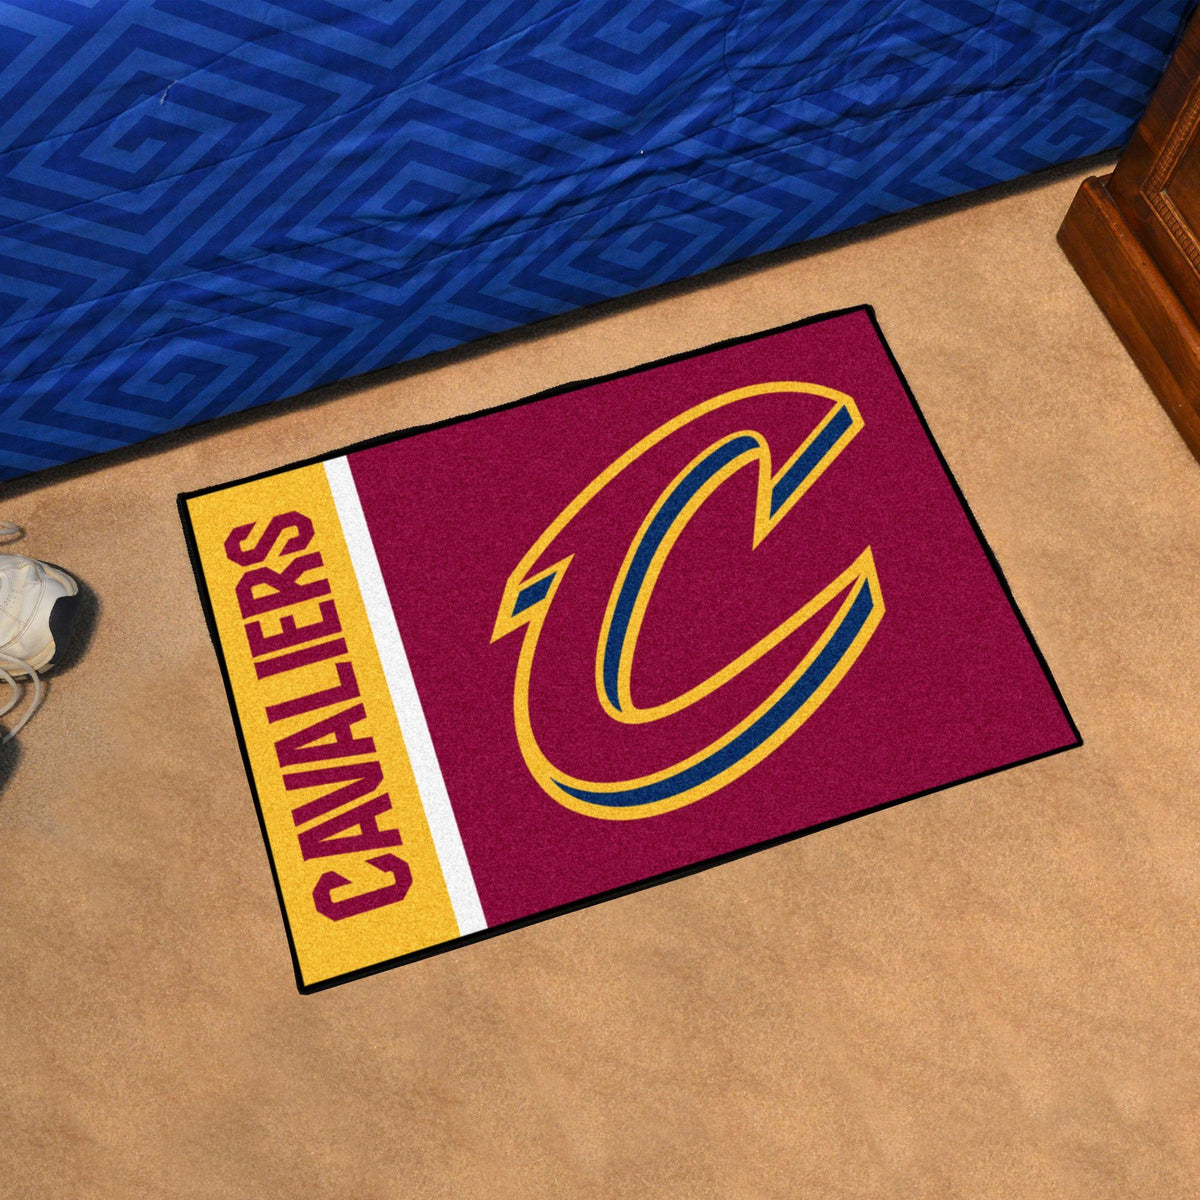 NBA - Uniform Starter Mat NBA Mats, Rectangular Mats, Uniform Starter Mat, NBA, Home Fan Mats Cleveland Cavaliers